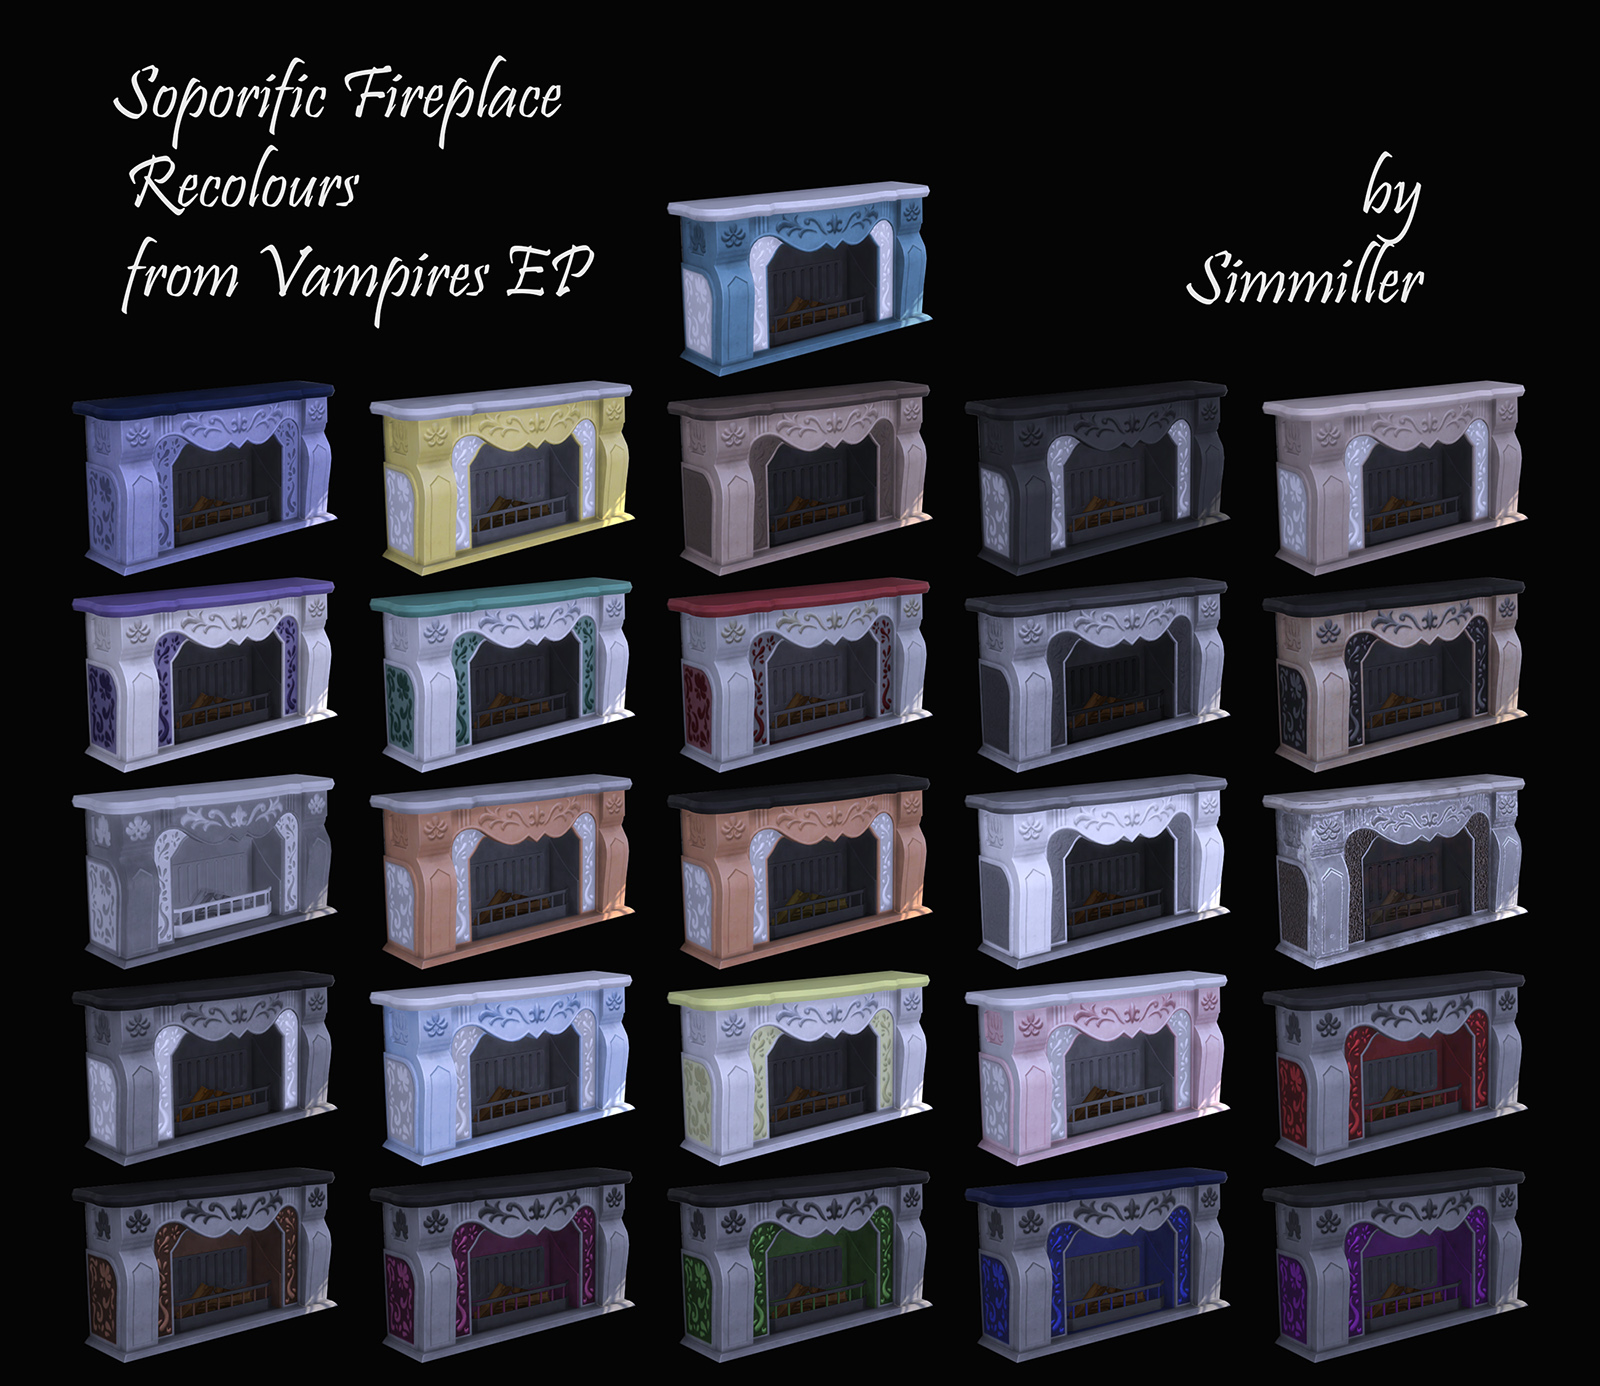 Mod The Sims - Soporific Fireplace from Vampires GP - Recolours